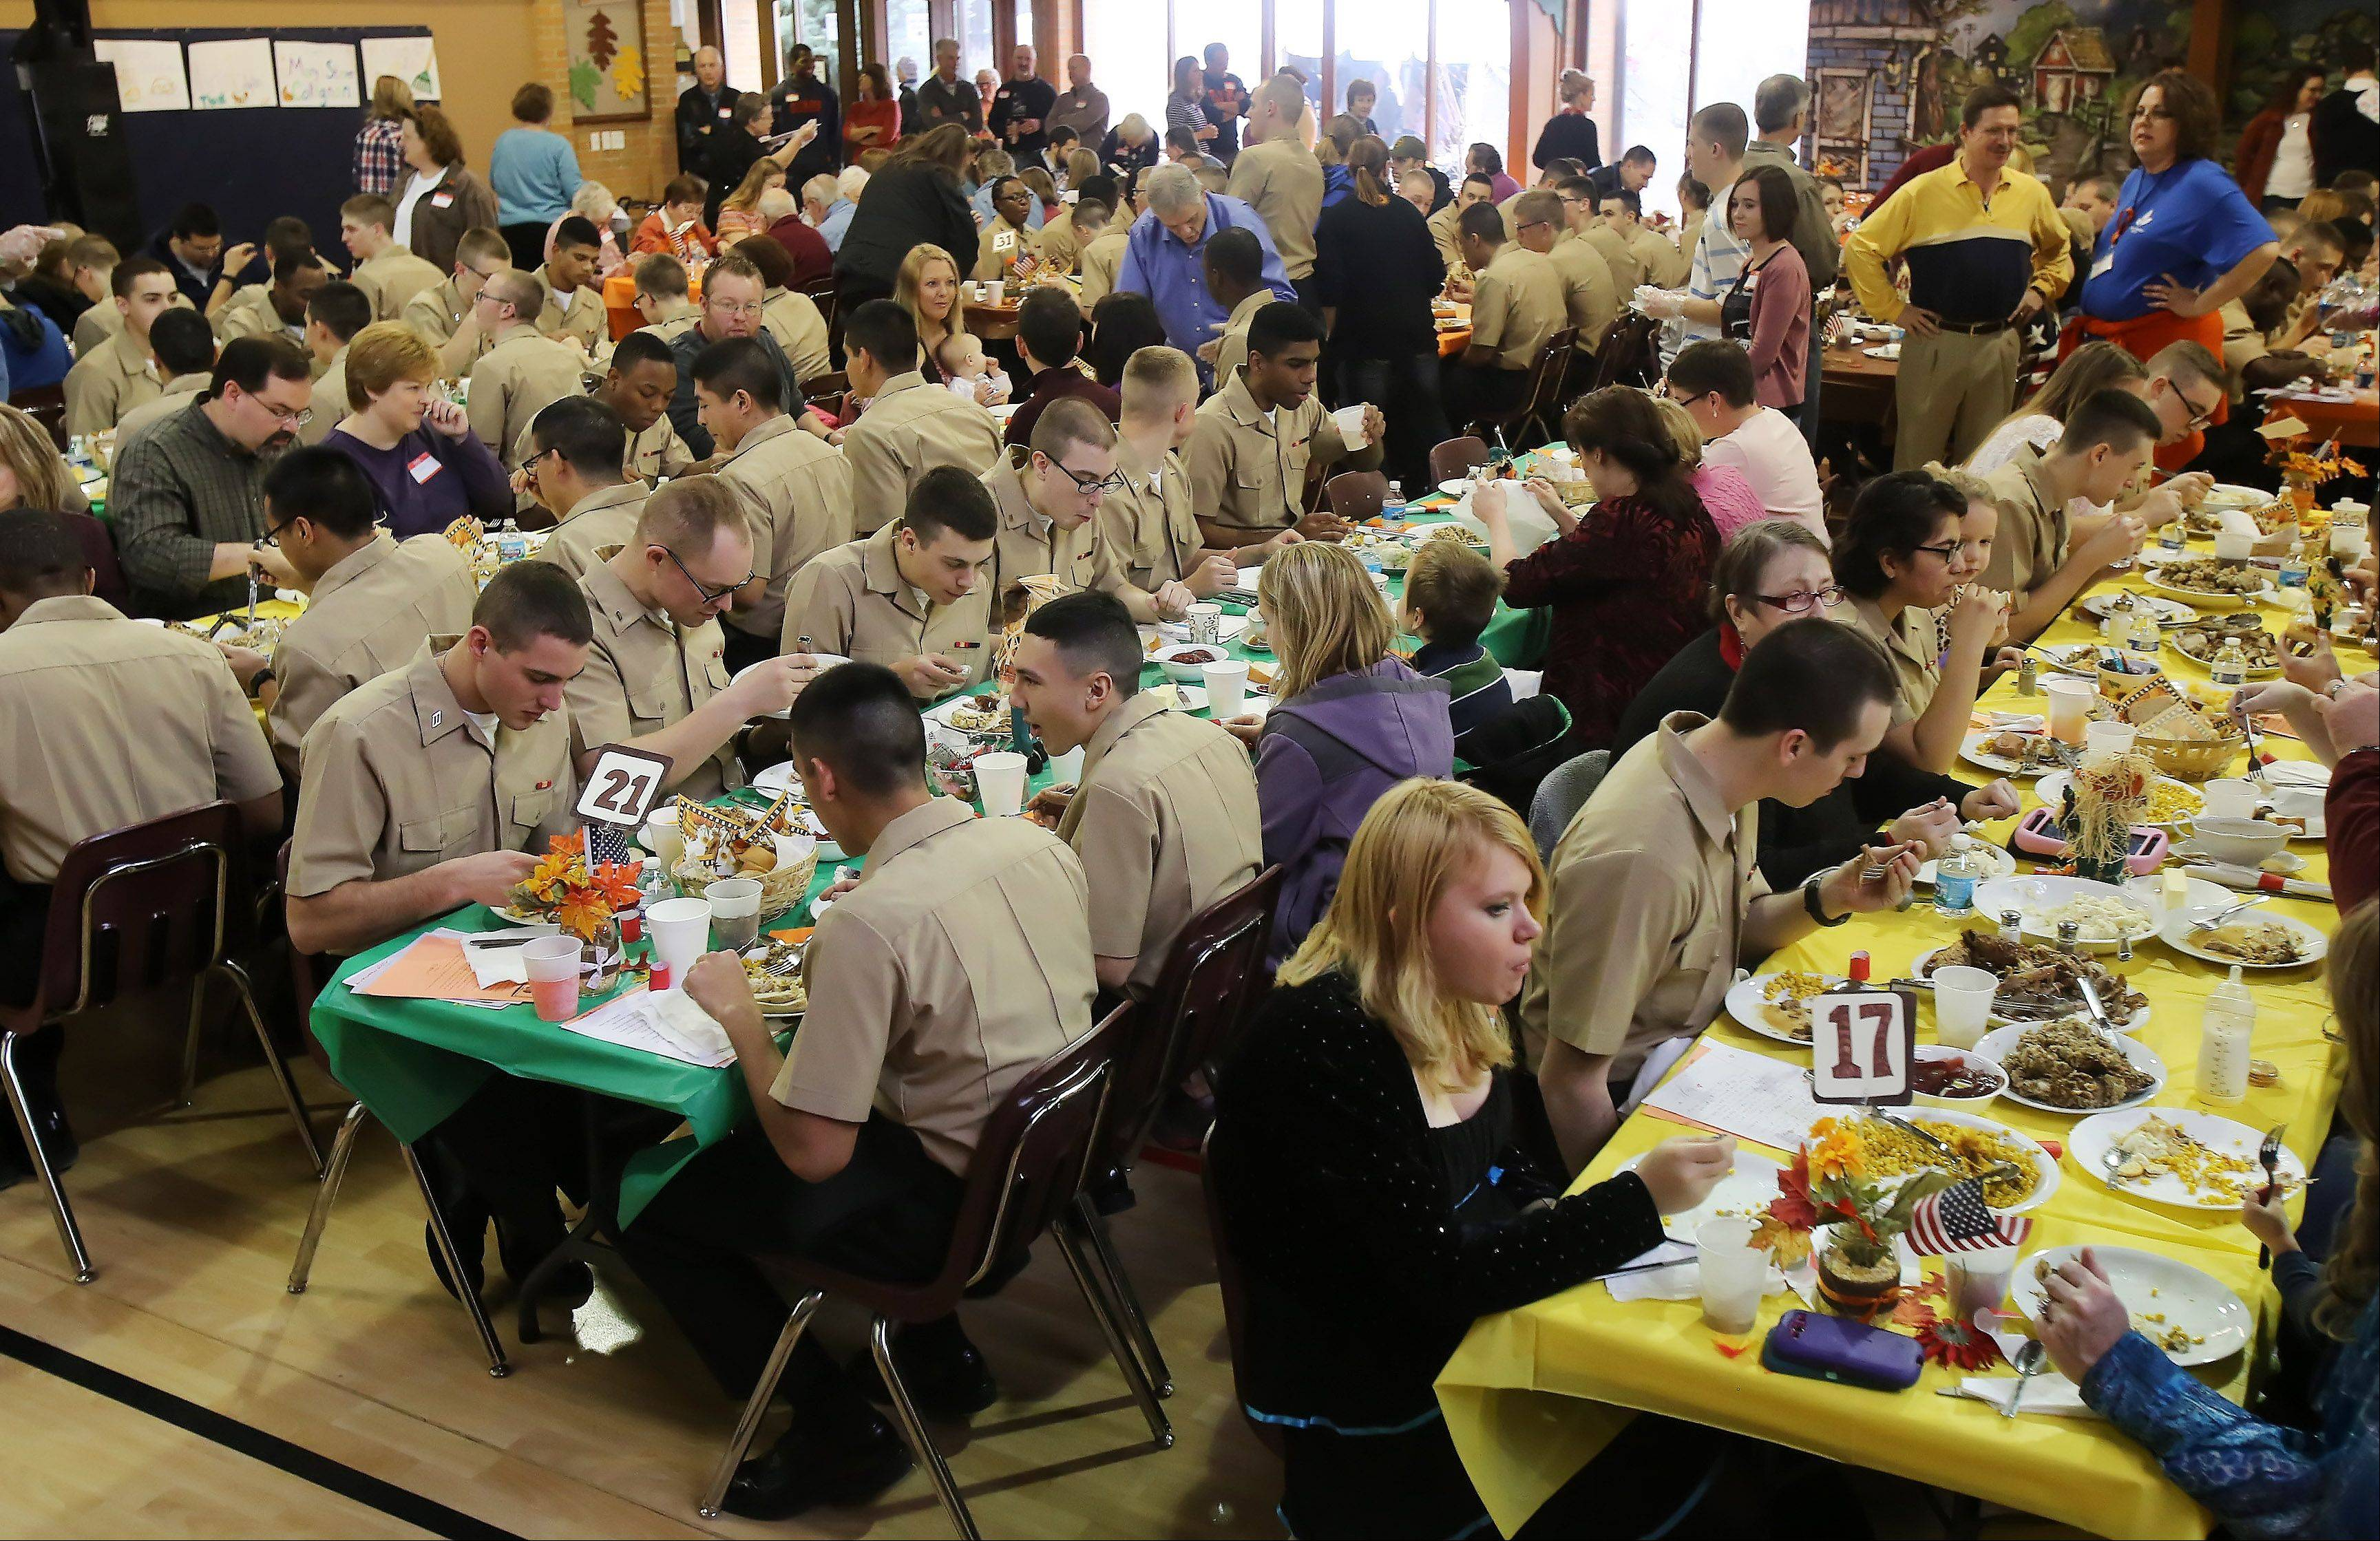 The annual free Thanksgiving dinner offered by the Gurnee Community Church for recruits and residents of the community on Thursday.